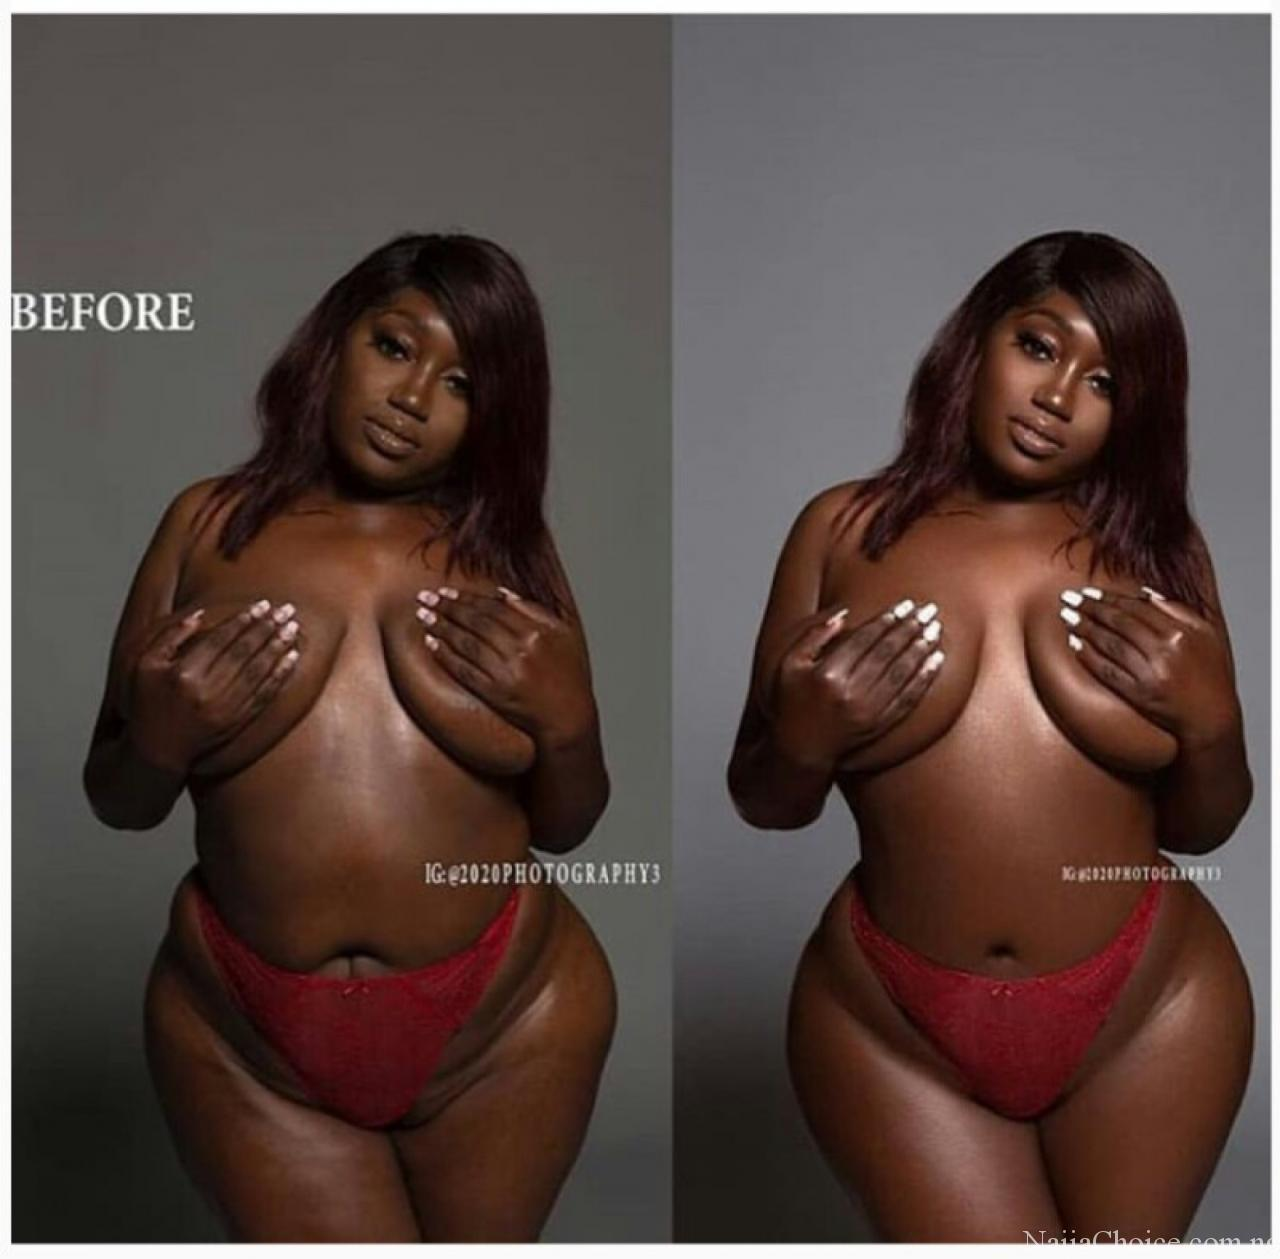 See The Amazing Transformation Of What Photoshop Did To This Lady [Photo Inside]